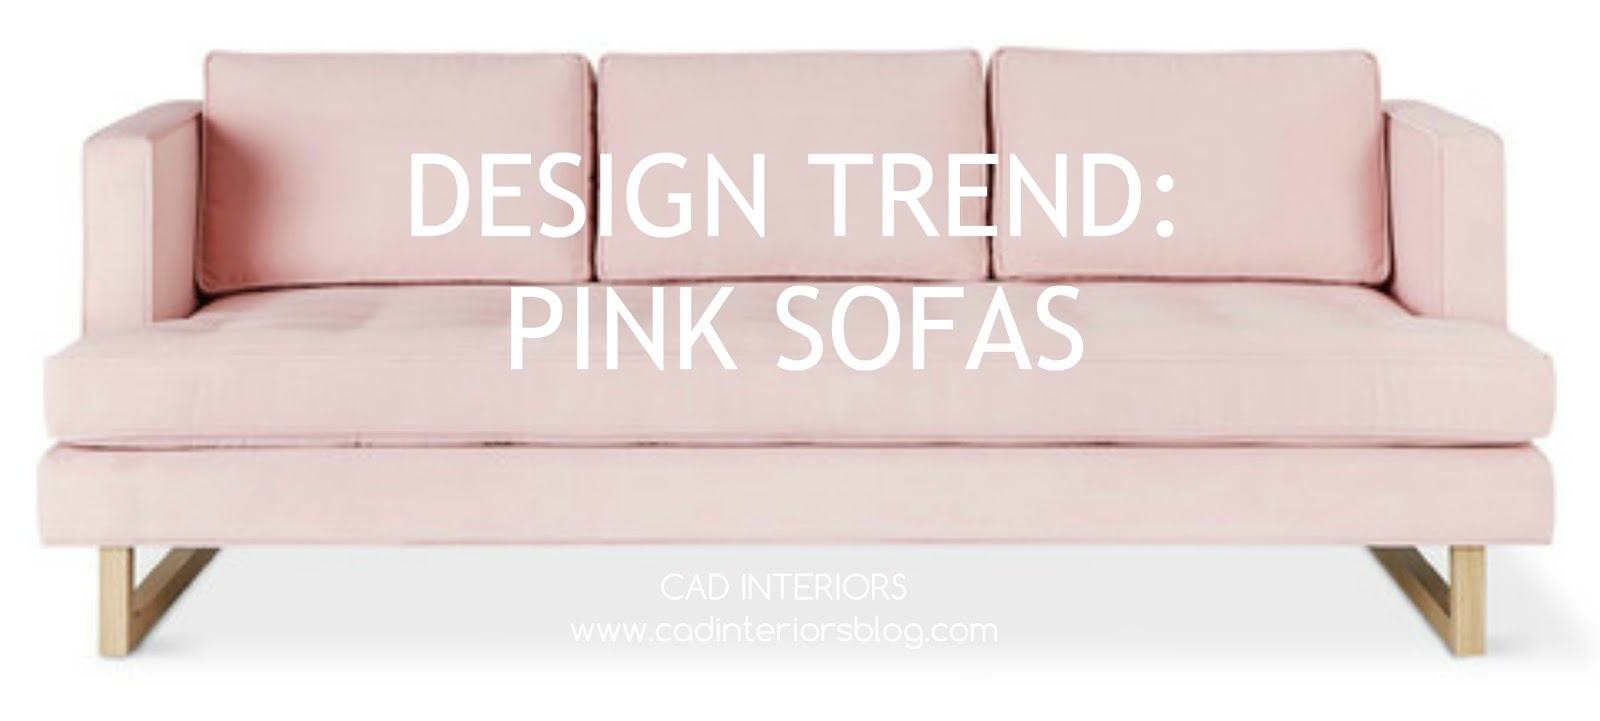 Pink Sofas Kivik Sofa Cover Colors Cad Interiors Affordable Stylish Interior Design Decorating Trend Inspiration Blush Furniture Home Decor Accents